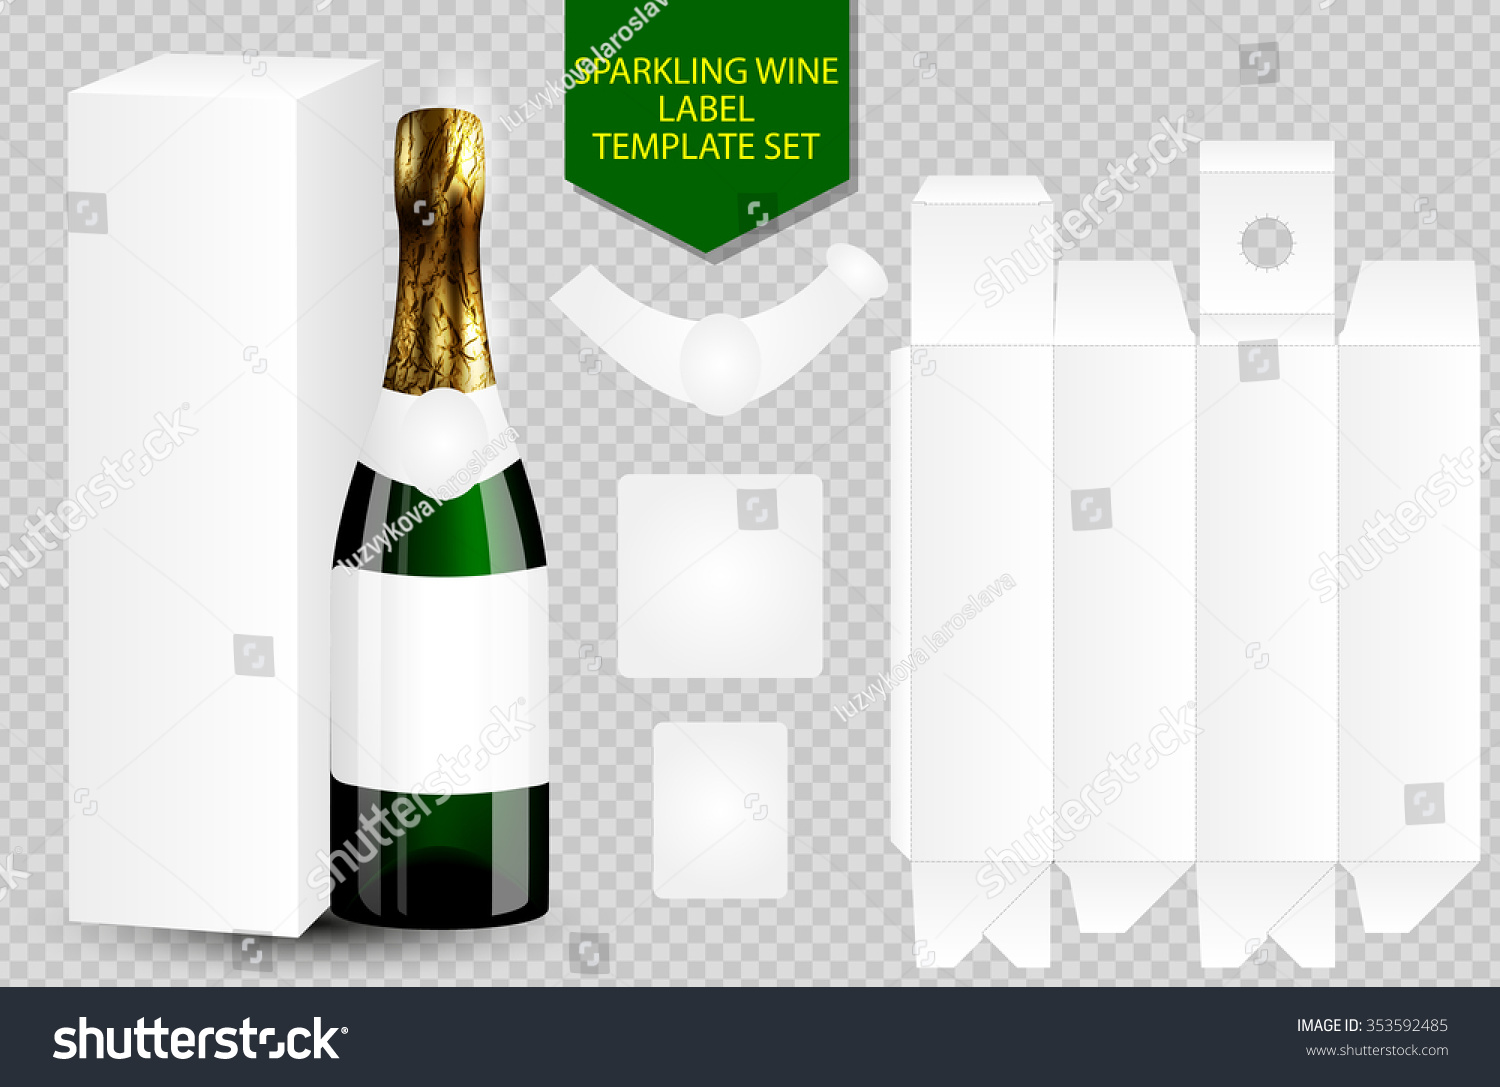 blank white label wine bottle package stock vector 353592485 shutterstock. Black Bedroom Furniture Sets. Home Design Ideas